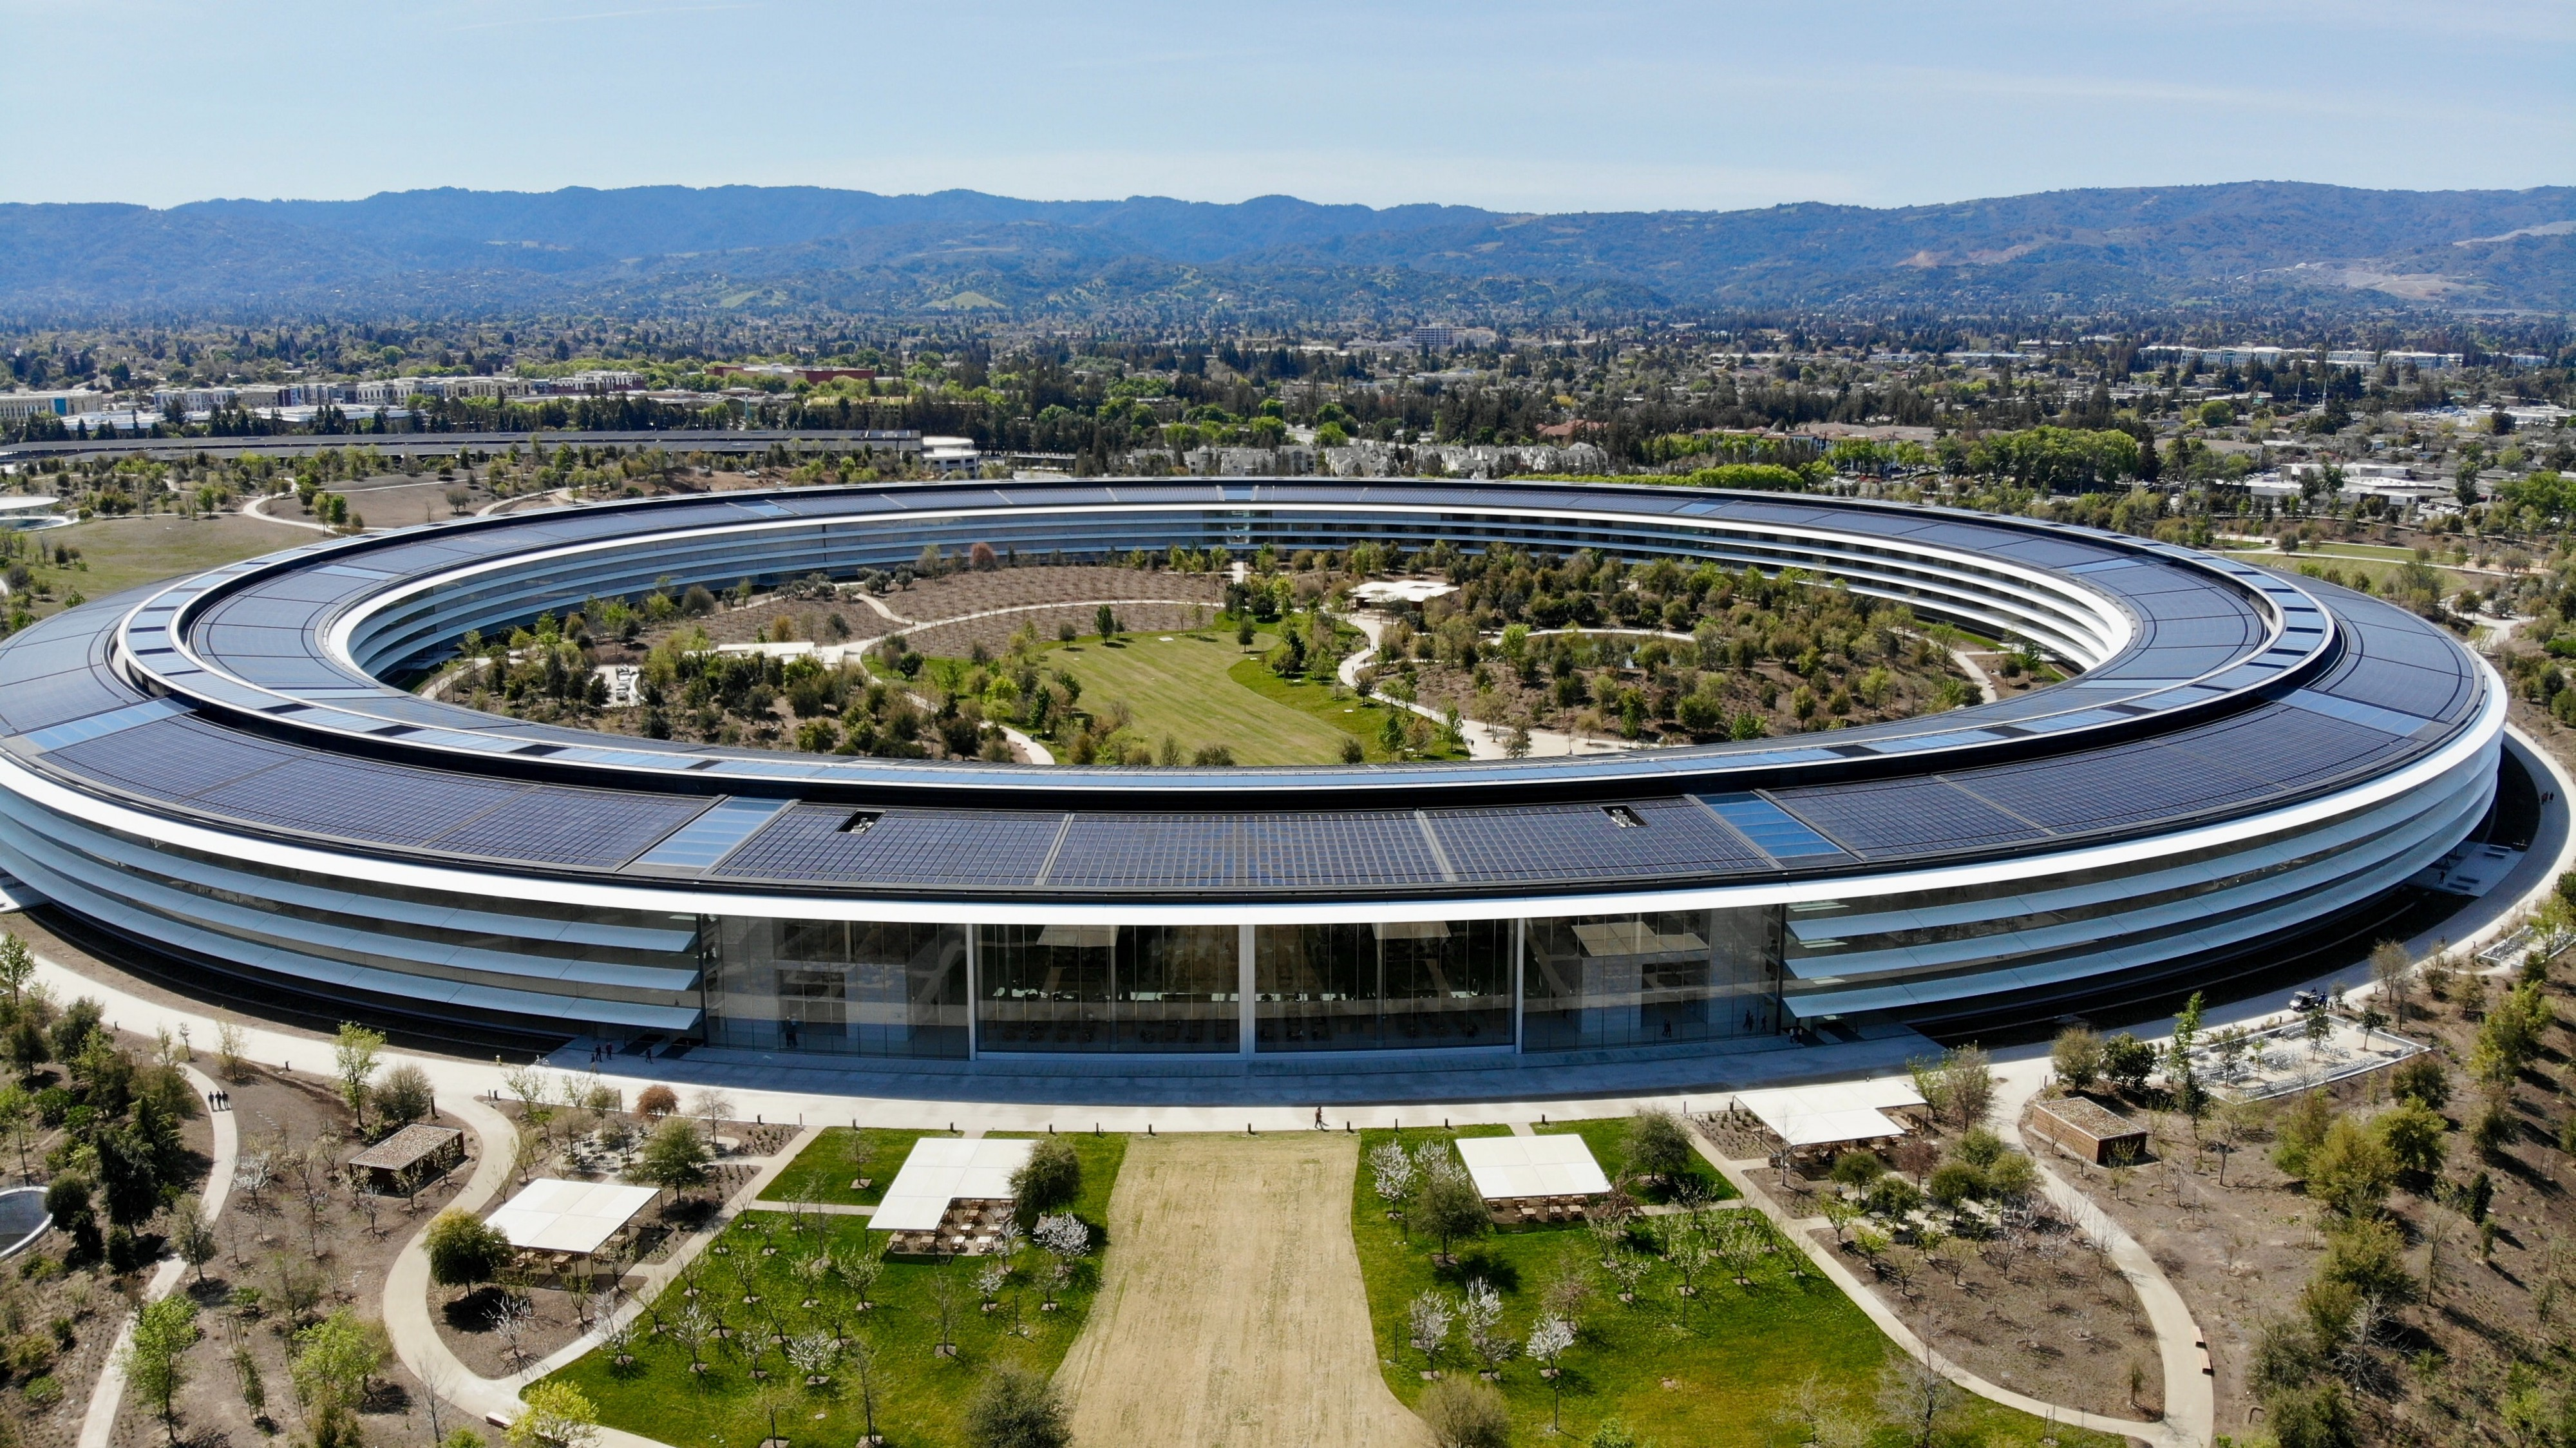 Apple Park in Silicon Valley